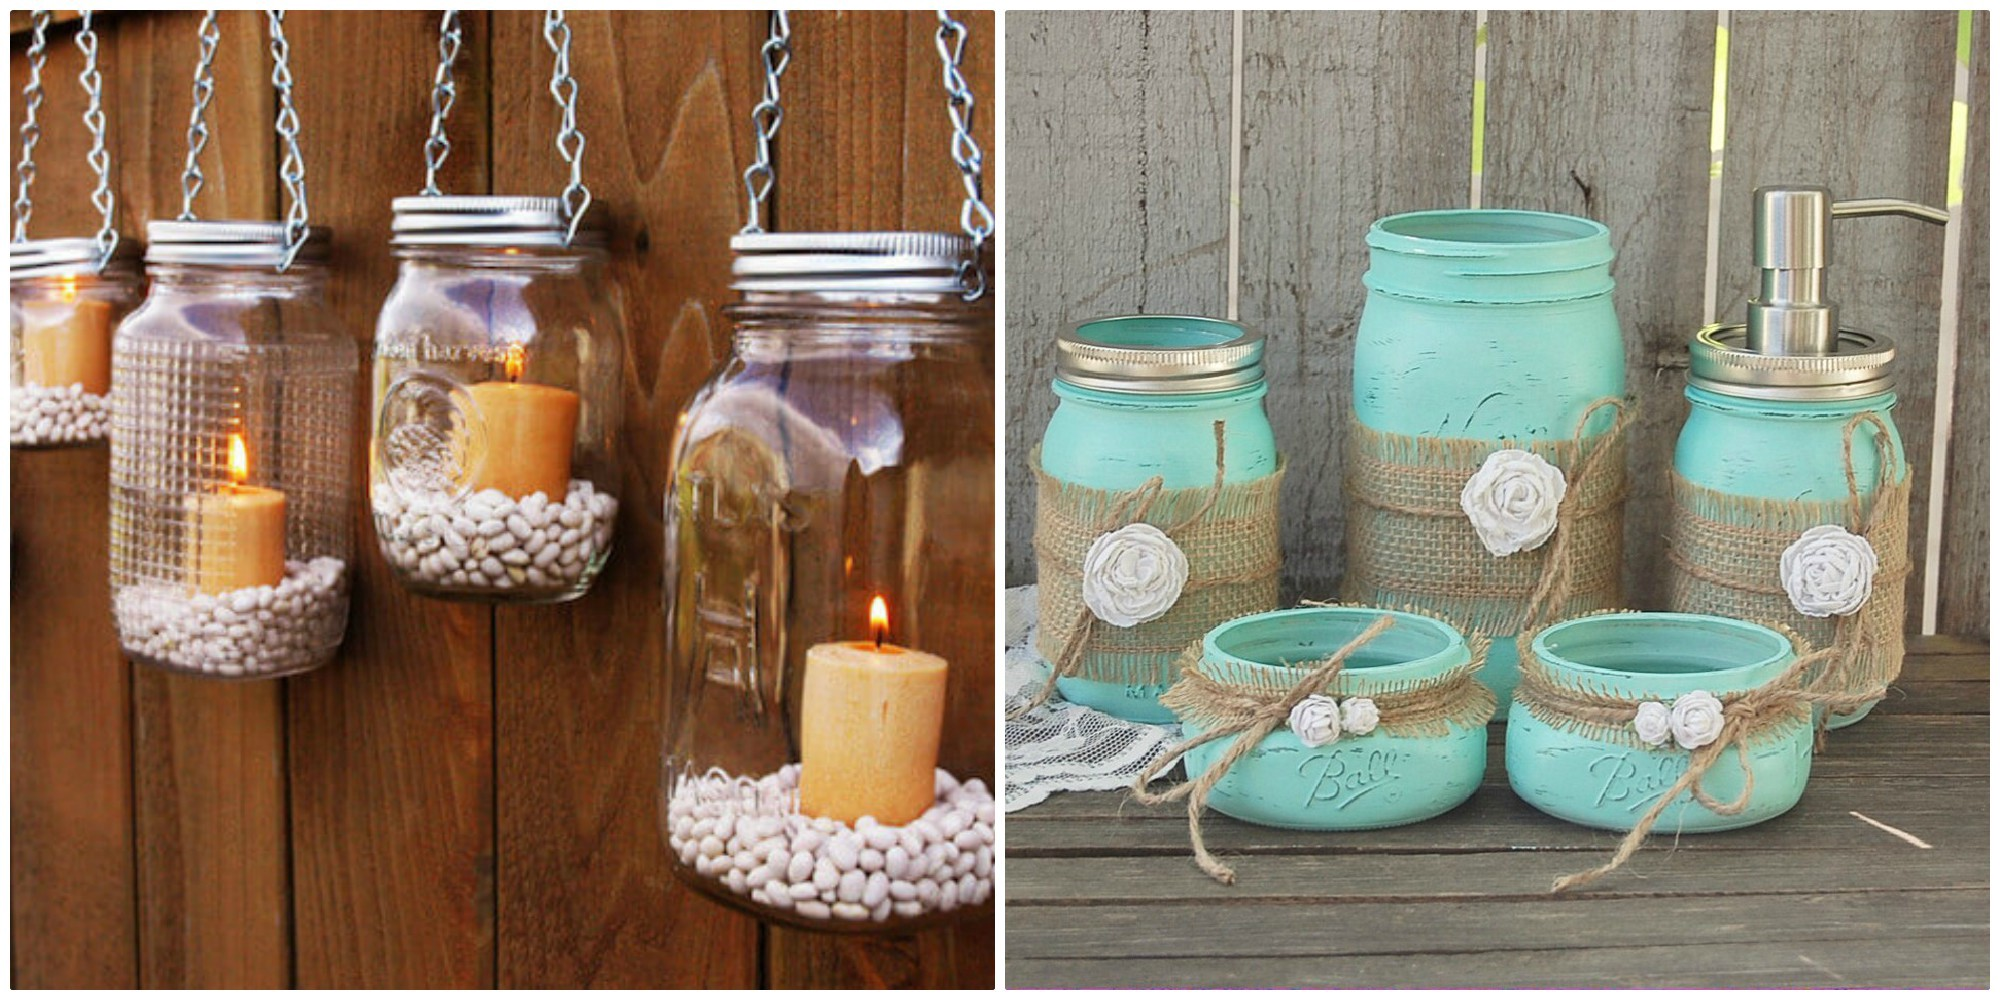 22 Easy Budget Friendly Diy Weekend Projects